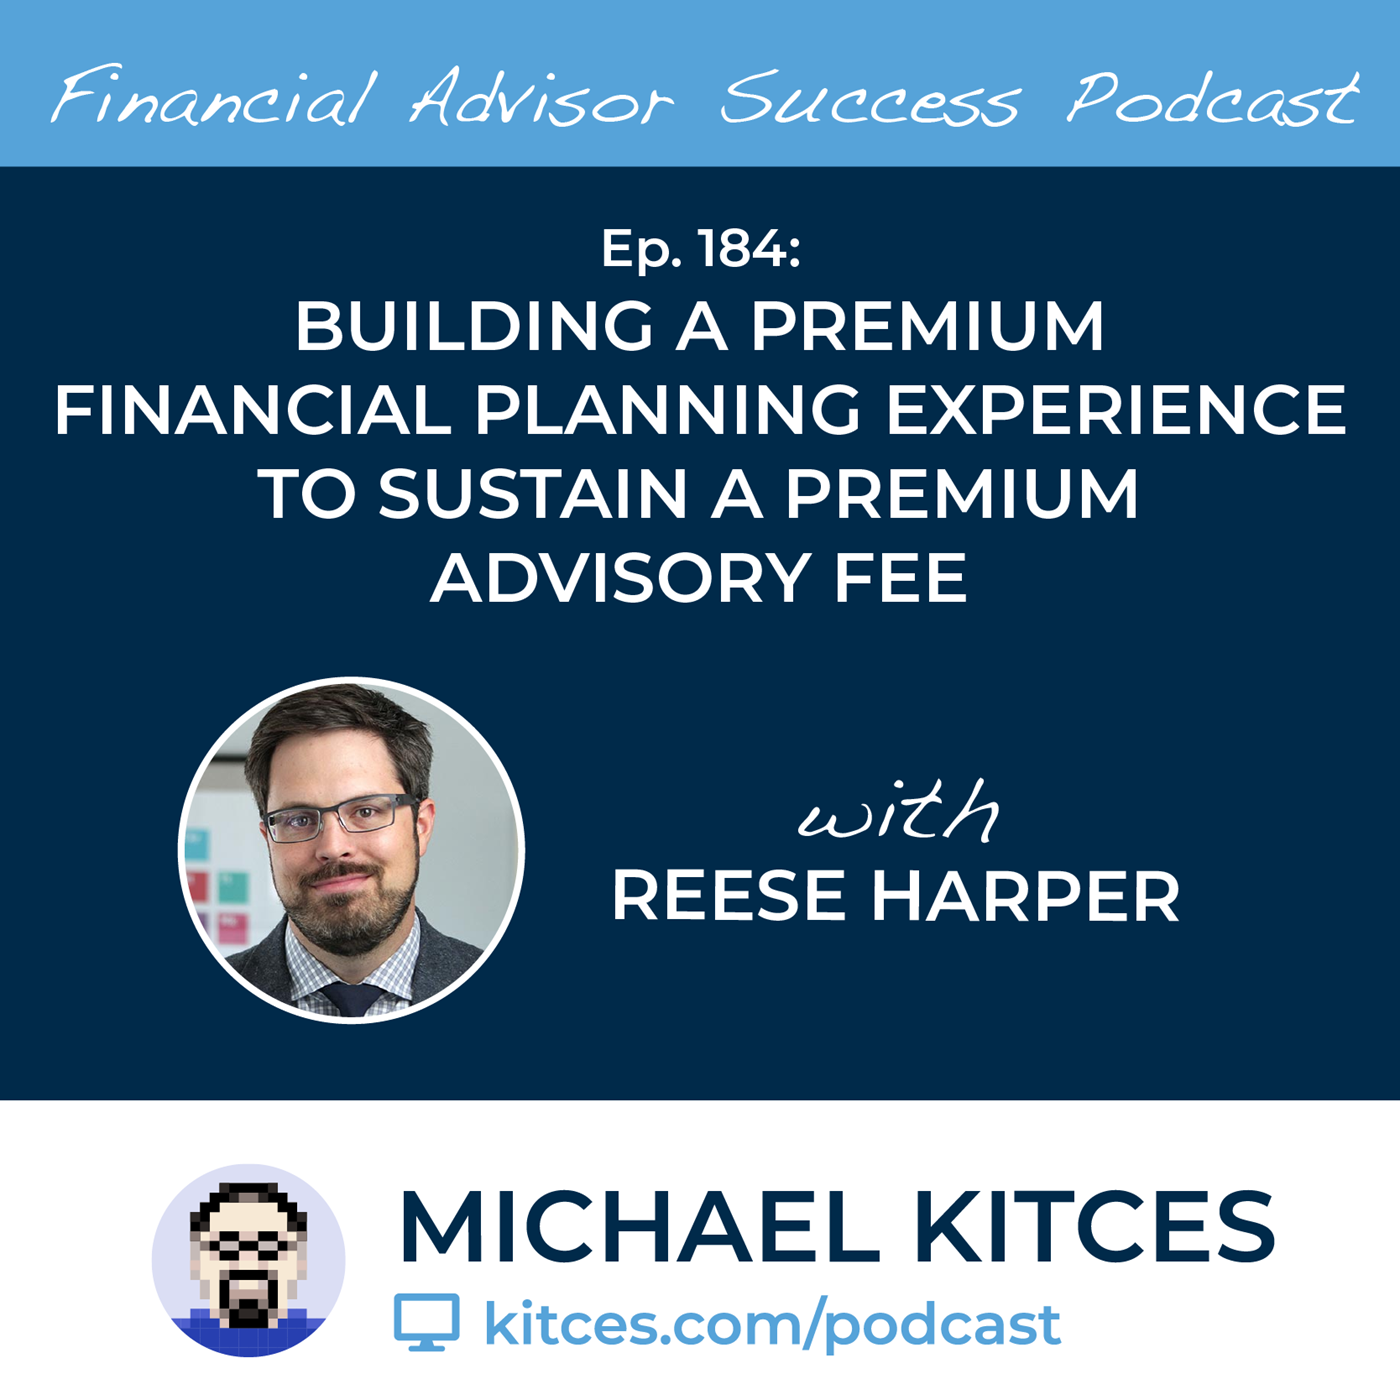 Ep 184: Building A Premium Financial Planning Experience To Sustain A Premium Advisory Fee with Reese Harper